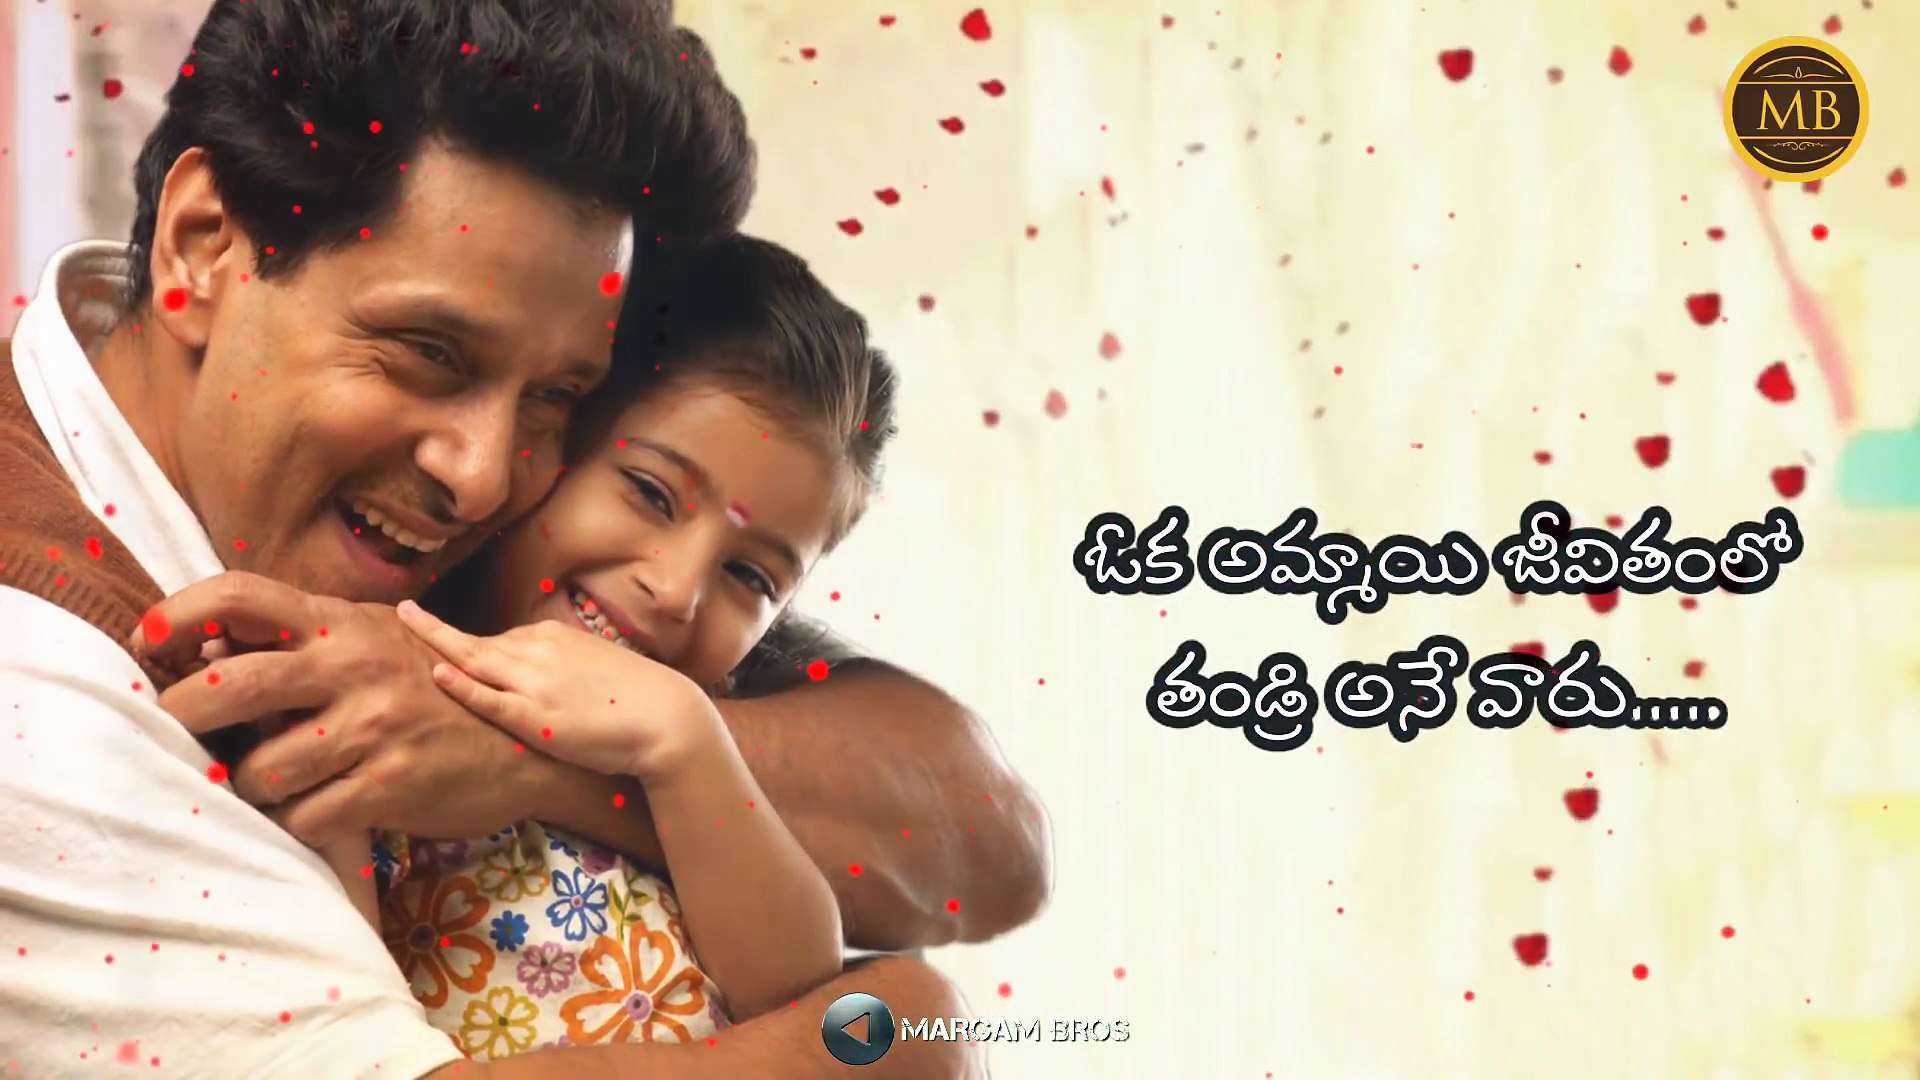 Emotional Father's Sad Quotes Whatsapp Status Video Telugu Whatsapp Status Video, whatsapp stat